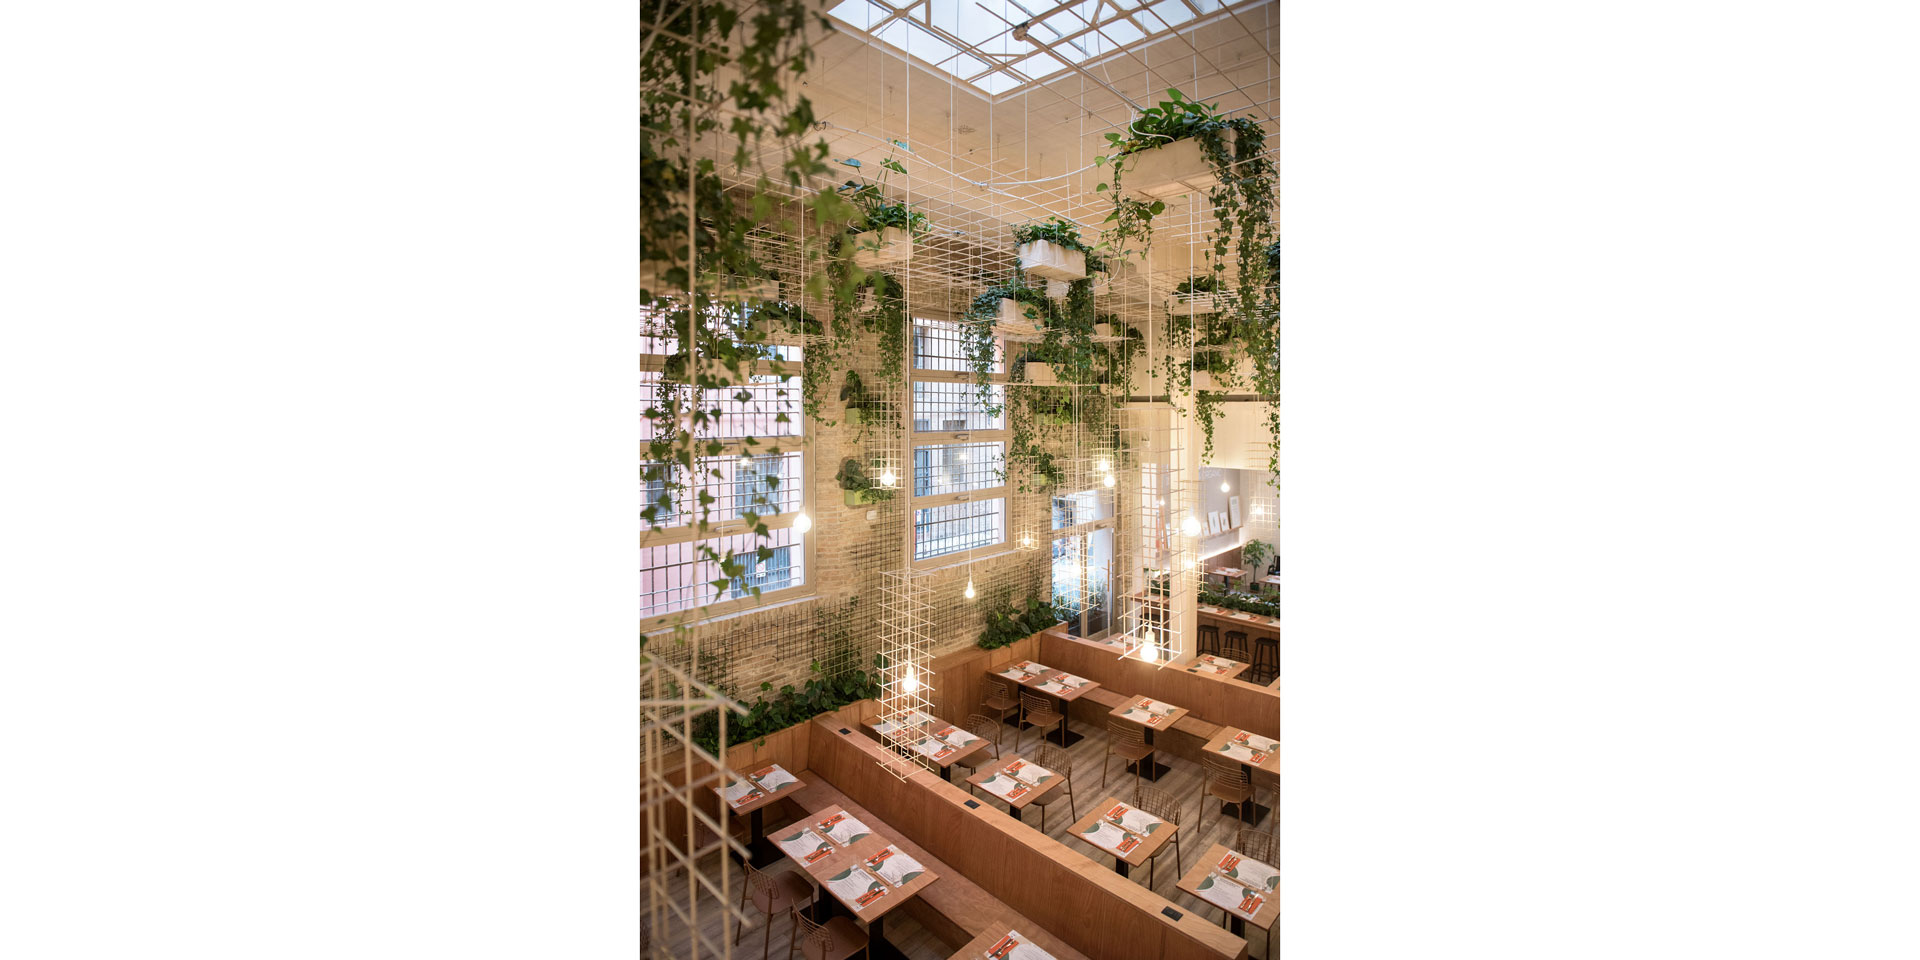 archinow_BOB_new-restaurant_19